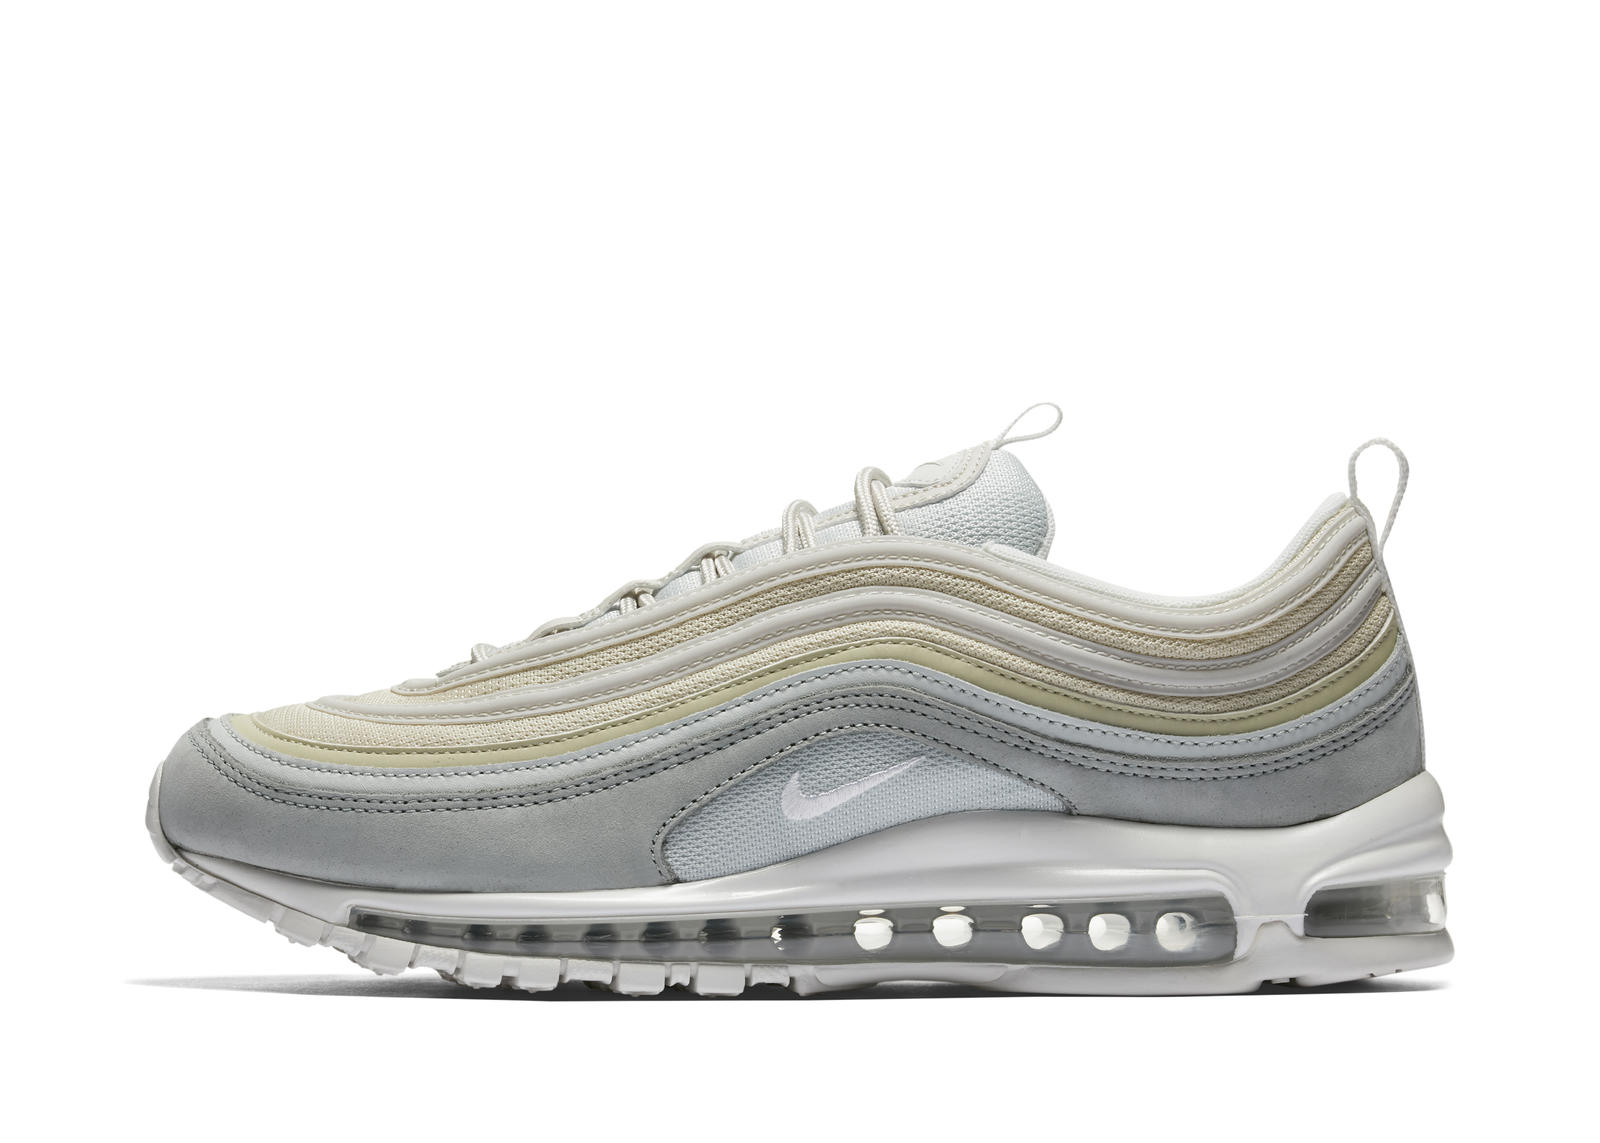 6423b2fb25 New Fall Colorways for the Air Max 97 - Nike News